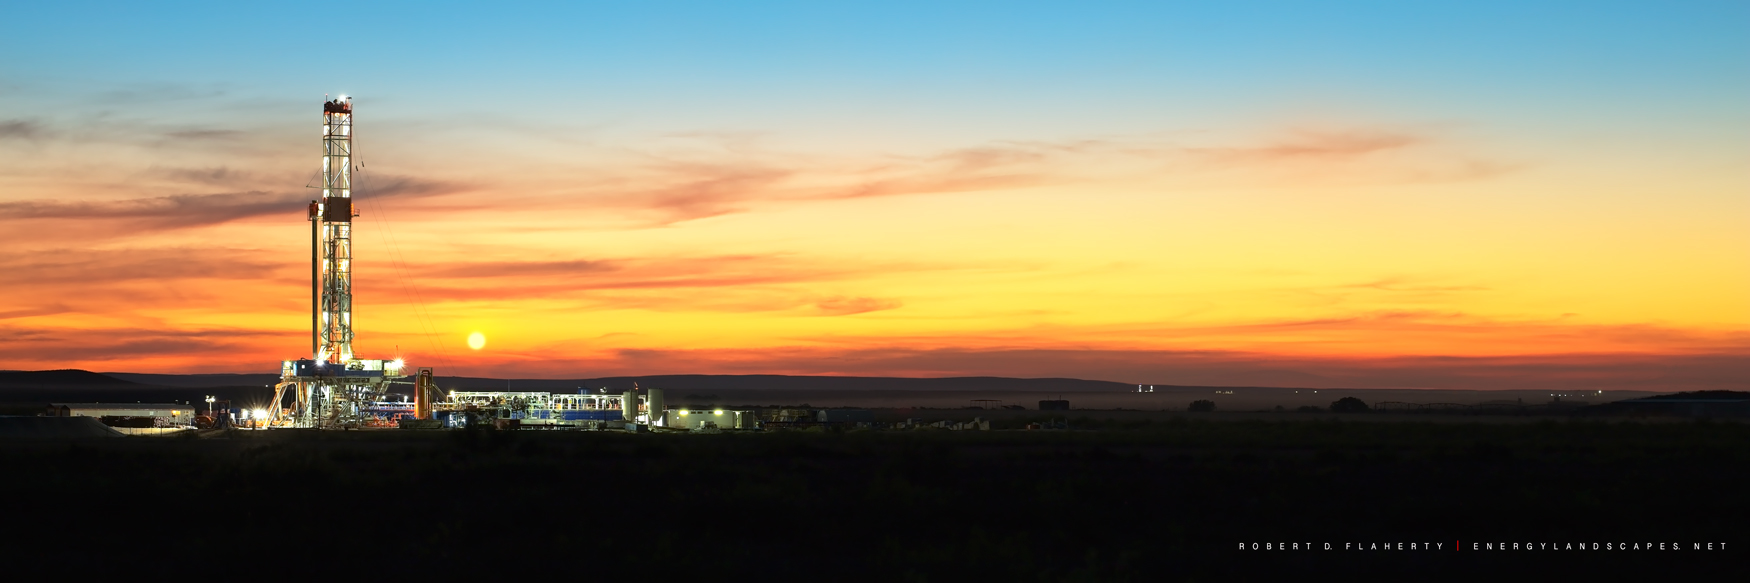 Patterson UTI, Patterson Drilling, drilling rig, panorama, high resolution, sunset, direction well, New Mexico, Delaware Basin, Permian Basin, Malaga New Mexico, September, Matador Resources , photo